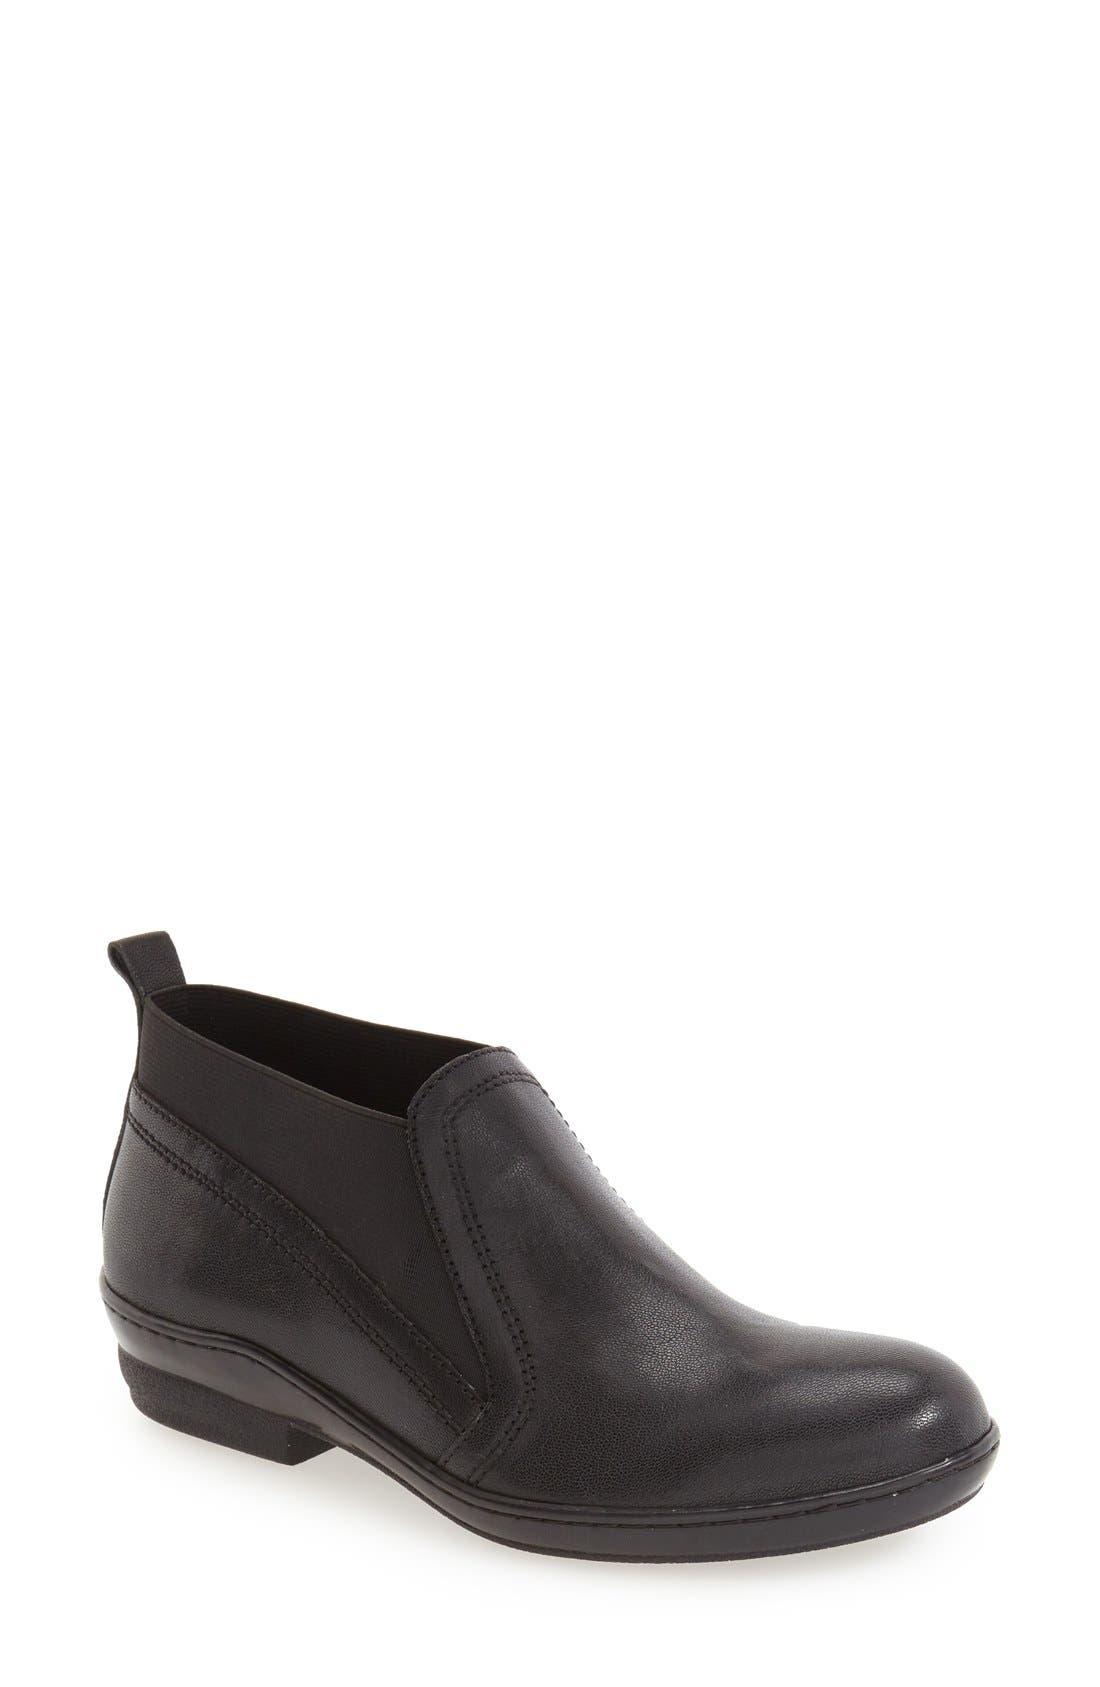 'Naya' Chelsea Boot,                             Main thumbnail 1, color,                             Black Leather